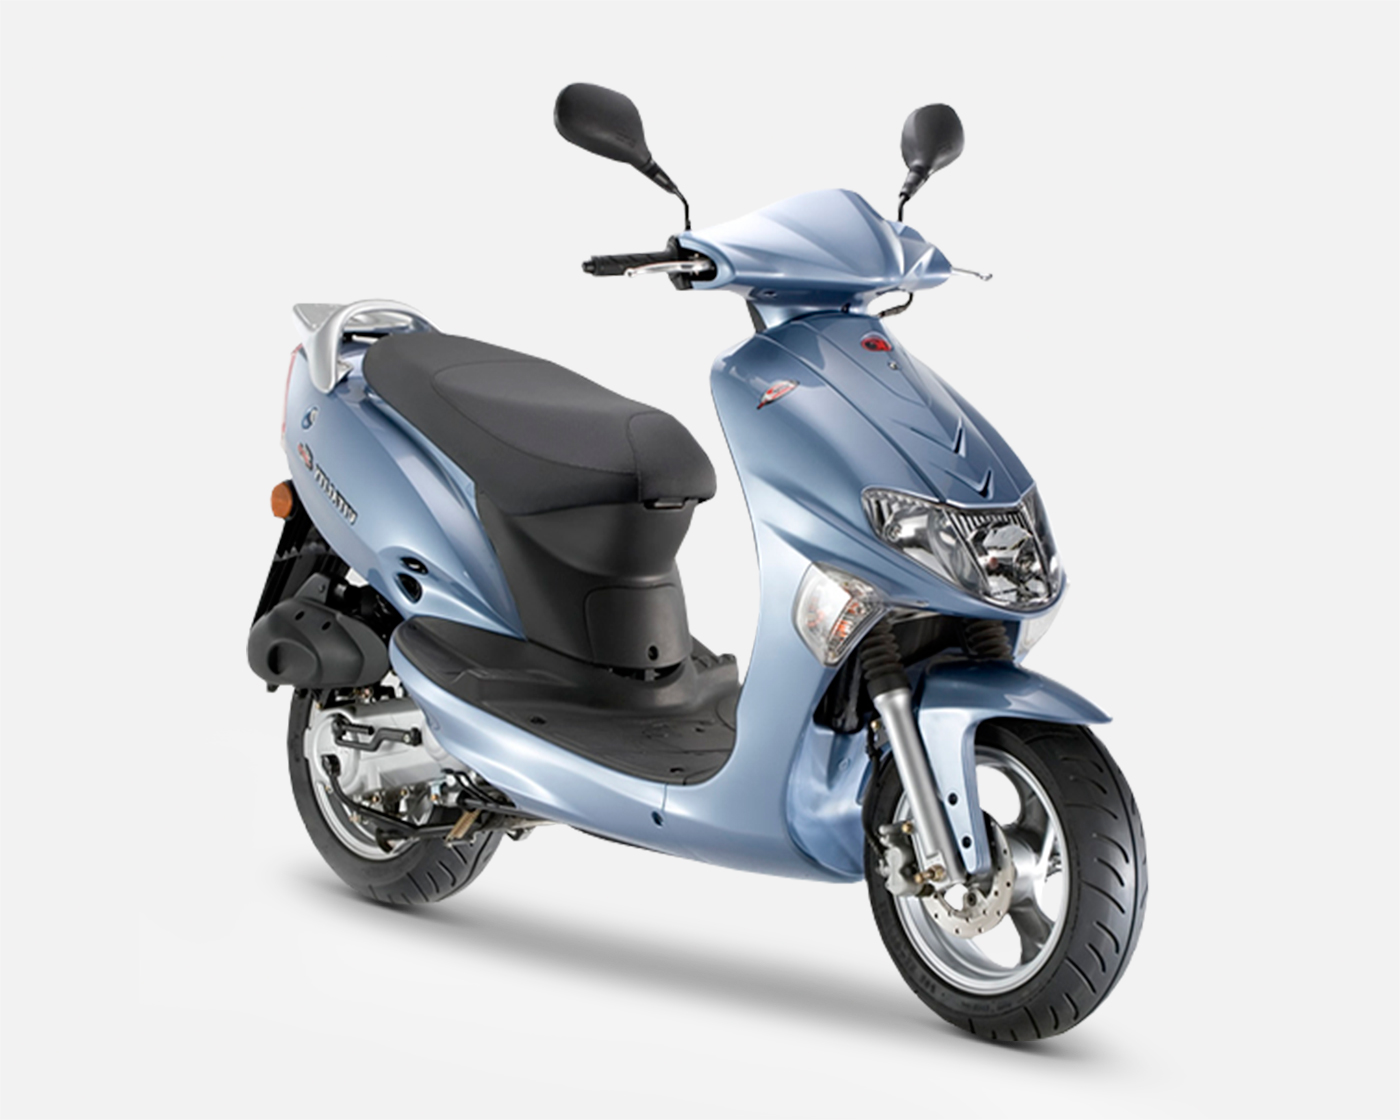 Kymco Vitality 50 2 Auto Electrical Wiring Diagram Spi Tronic Lexus V8 2005 Pics Specs And Information